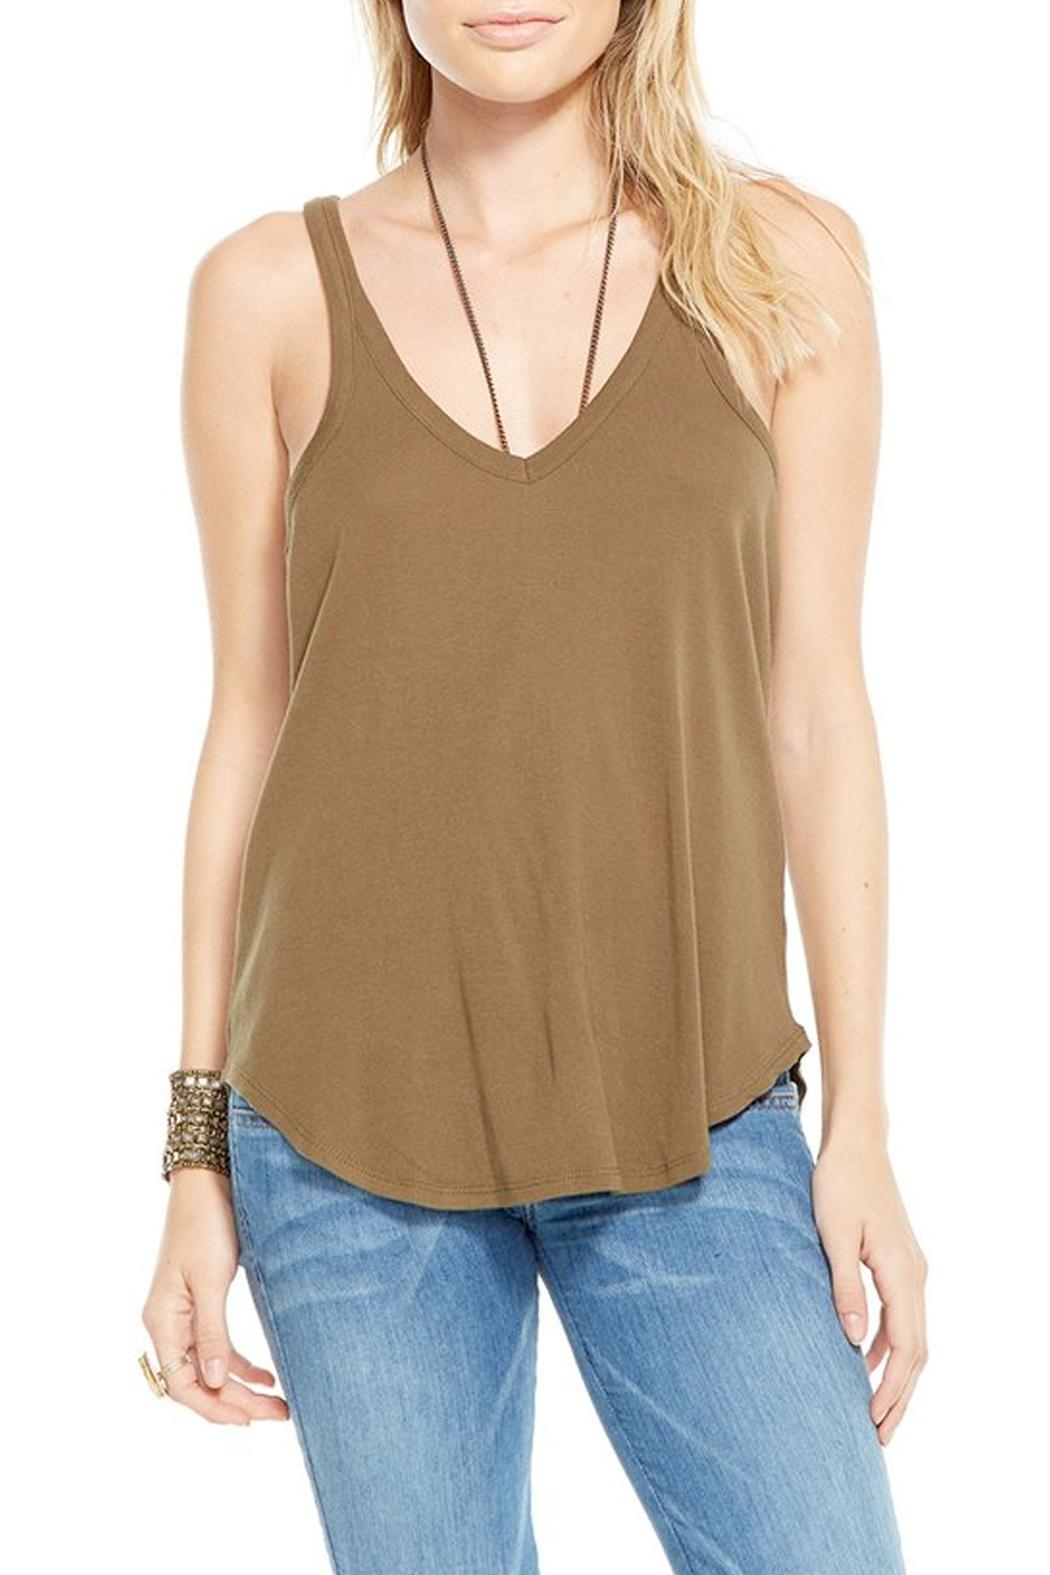 Chaser Moss Racerback Tank Top - Main Image